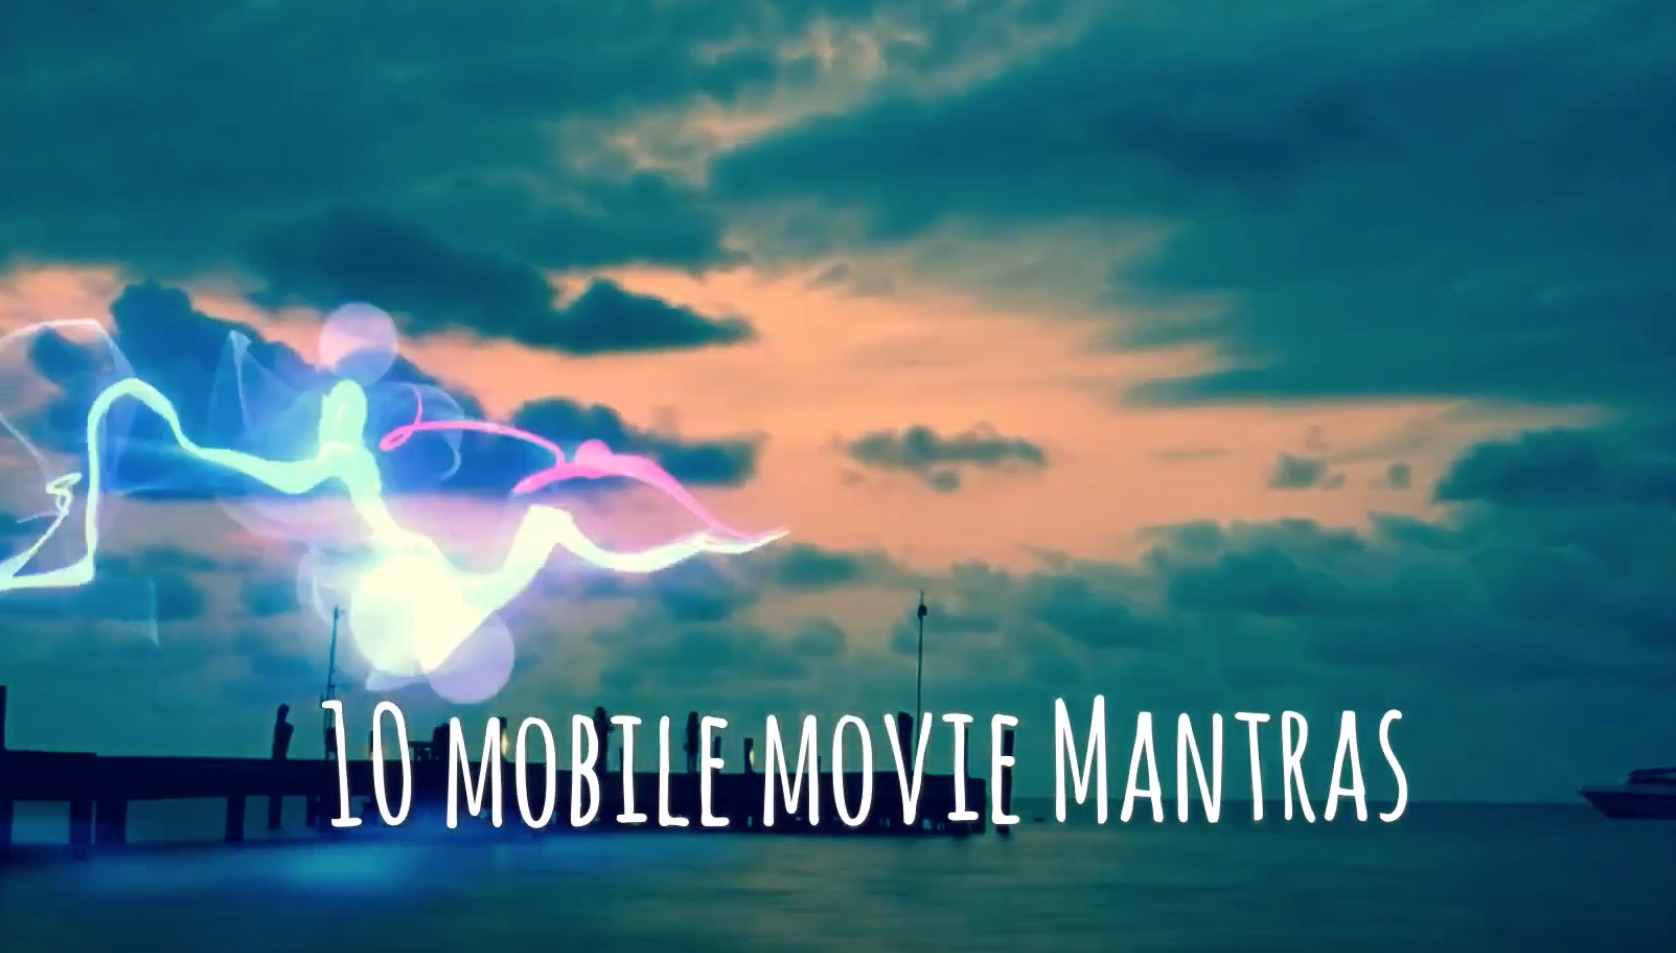 10 Mobile Movie Mantra